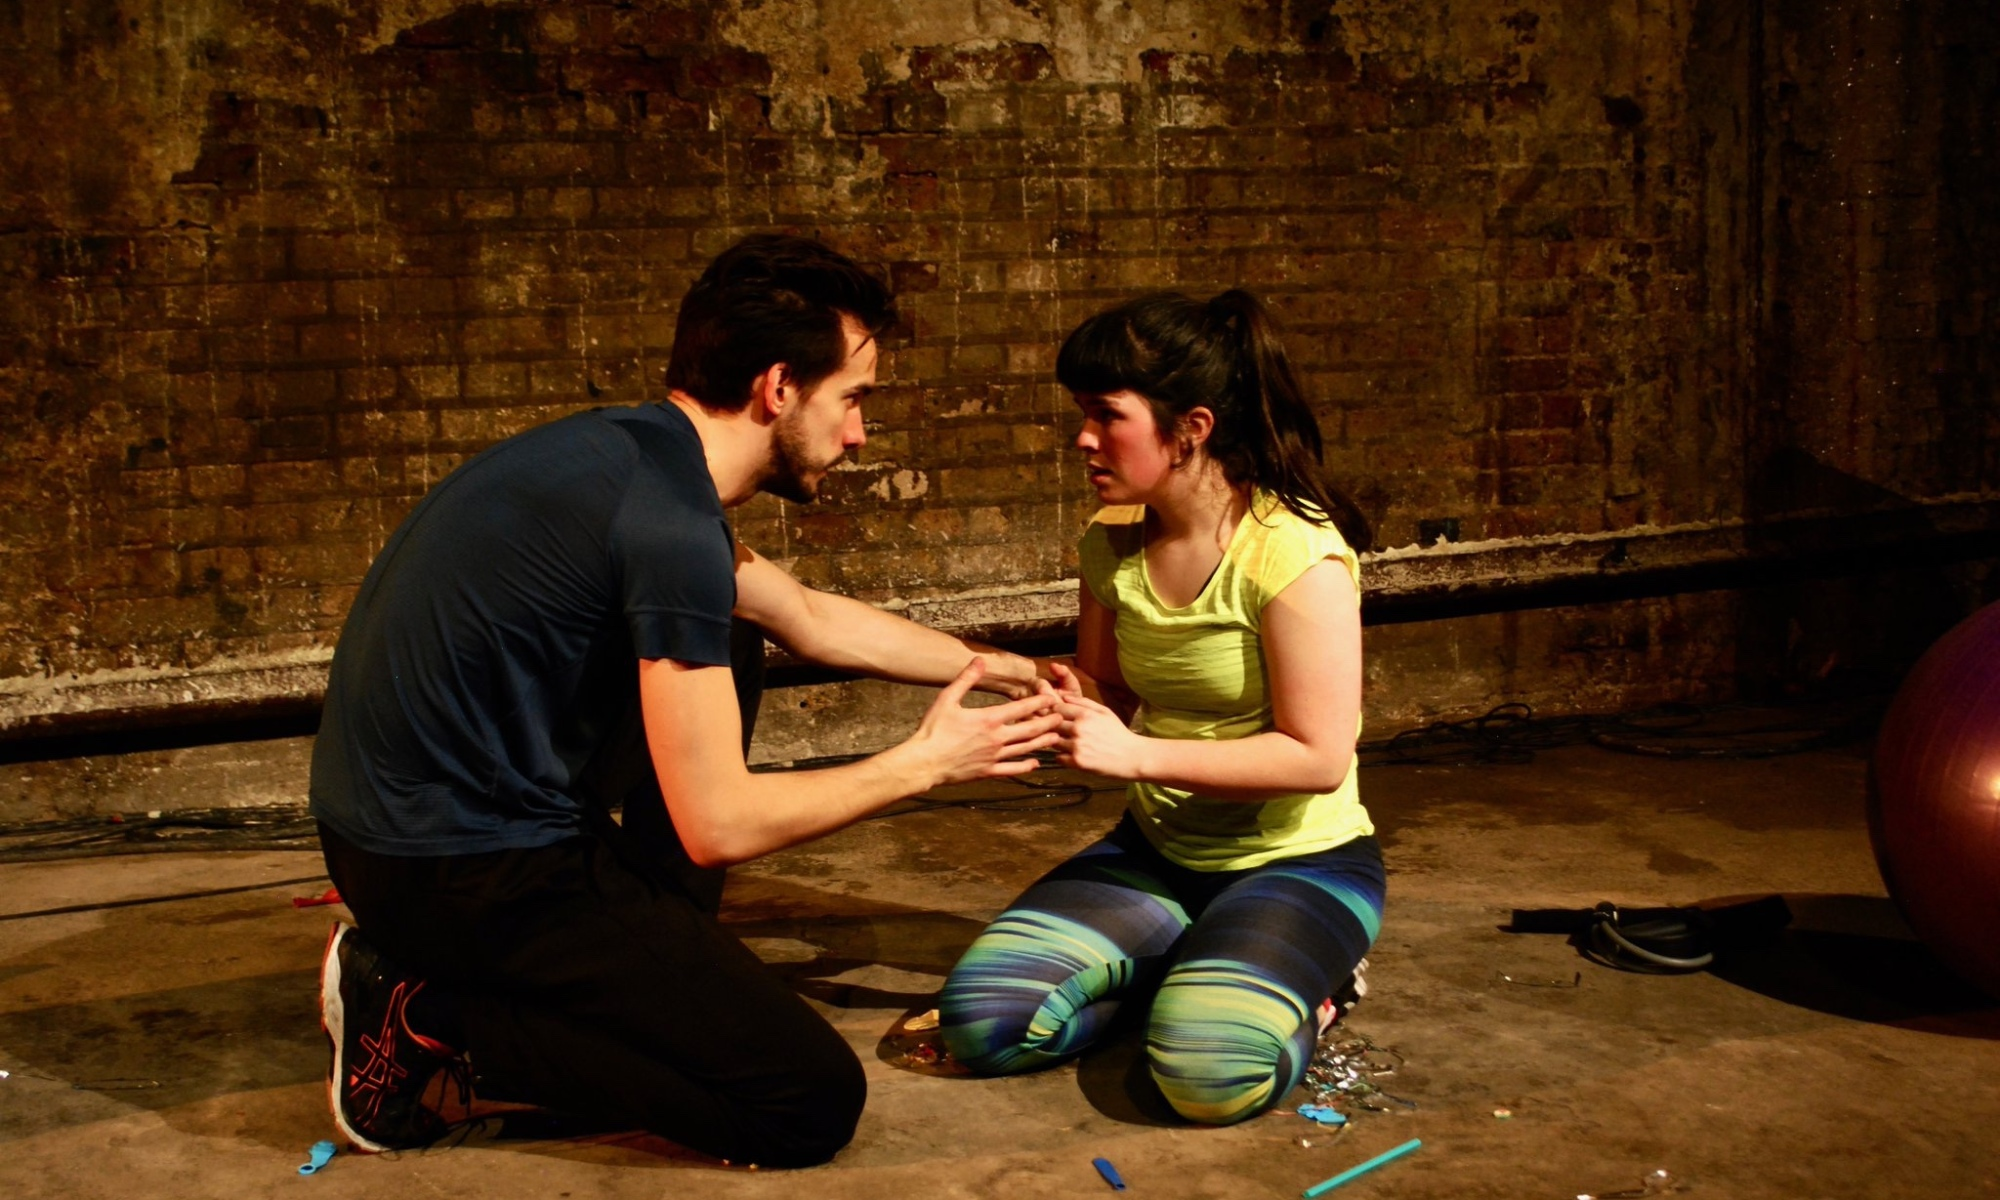 A woman in a yellow shirt and jogging bottoms kneels on the floor. Her hands are held by a man in a black shirt and black jeans. They are both looking at each other, the man with a serious facial expression. A brick wall is behind them.